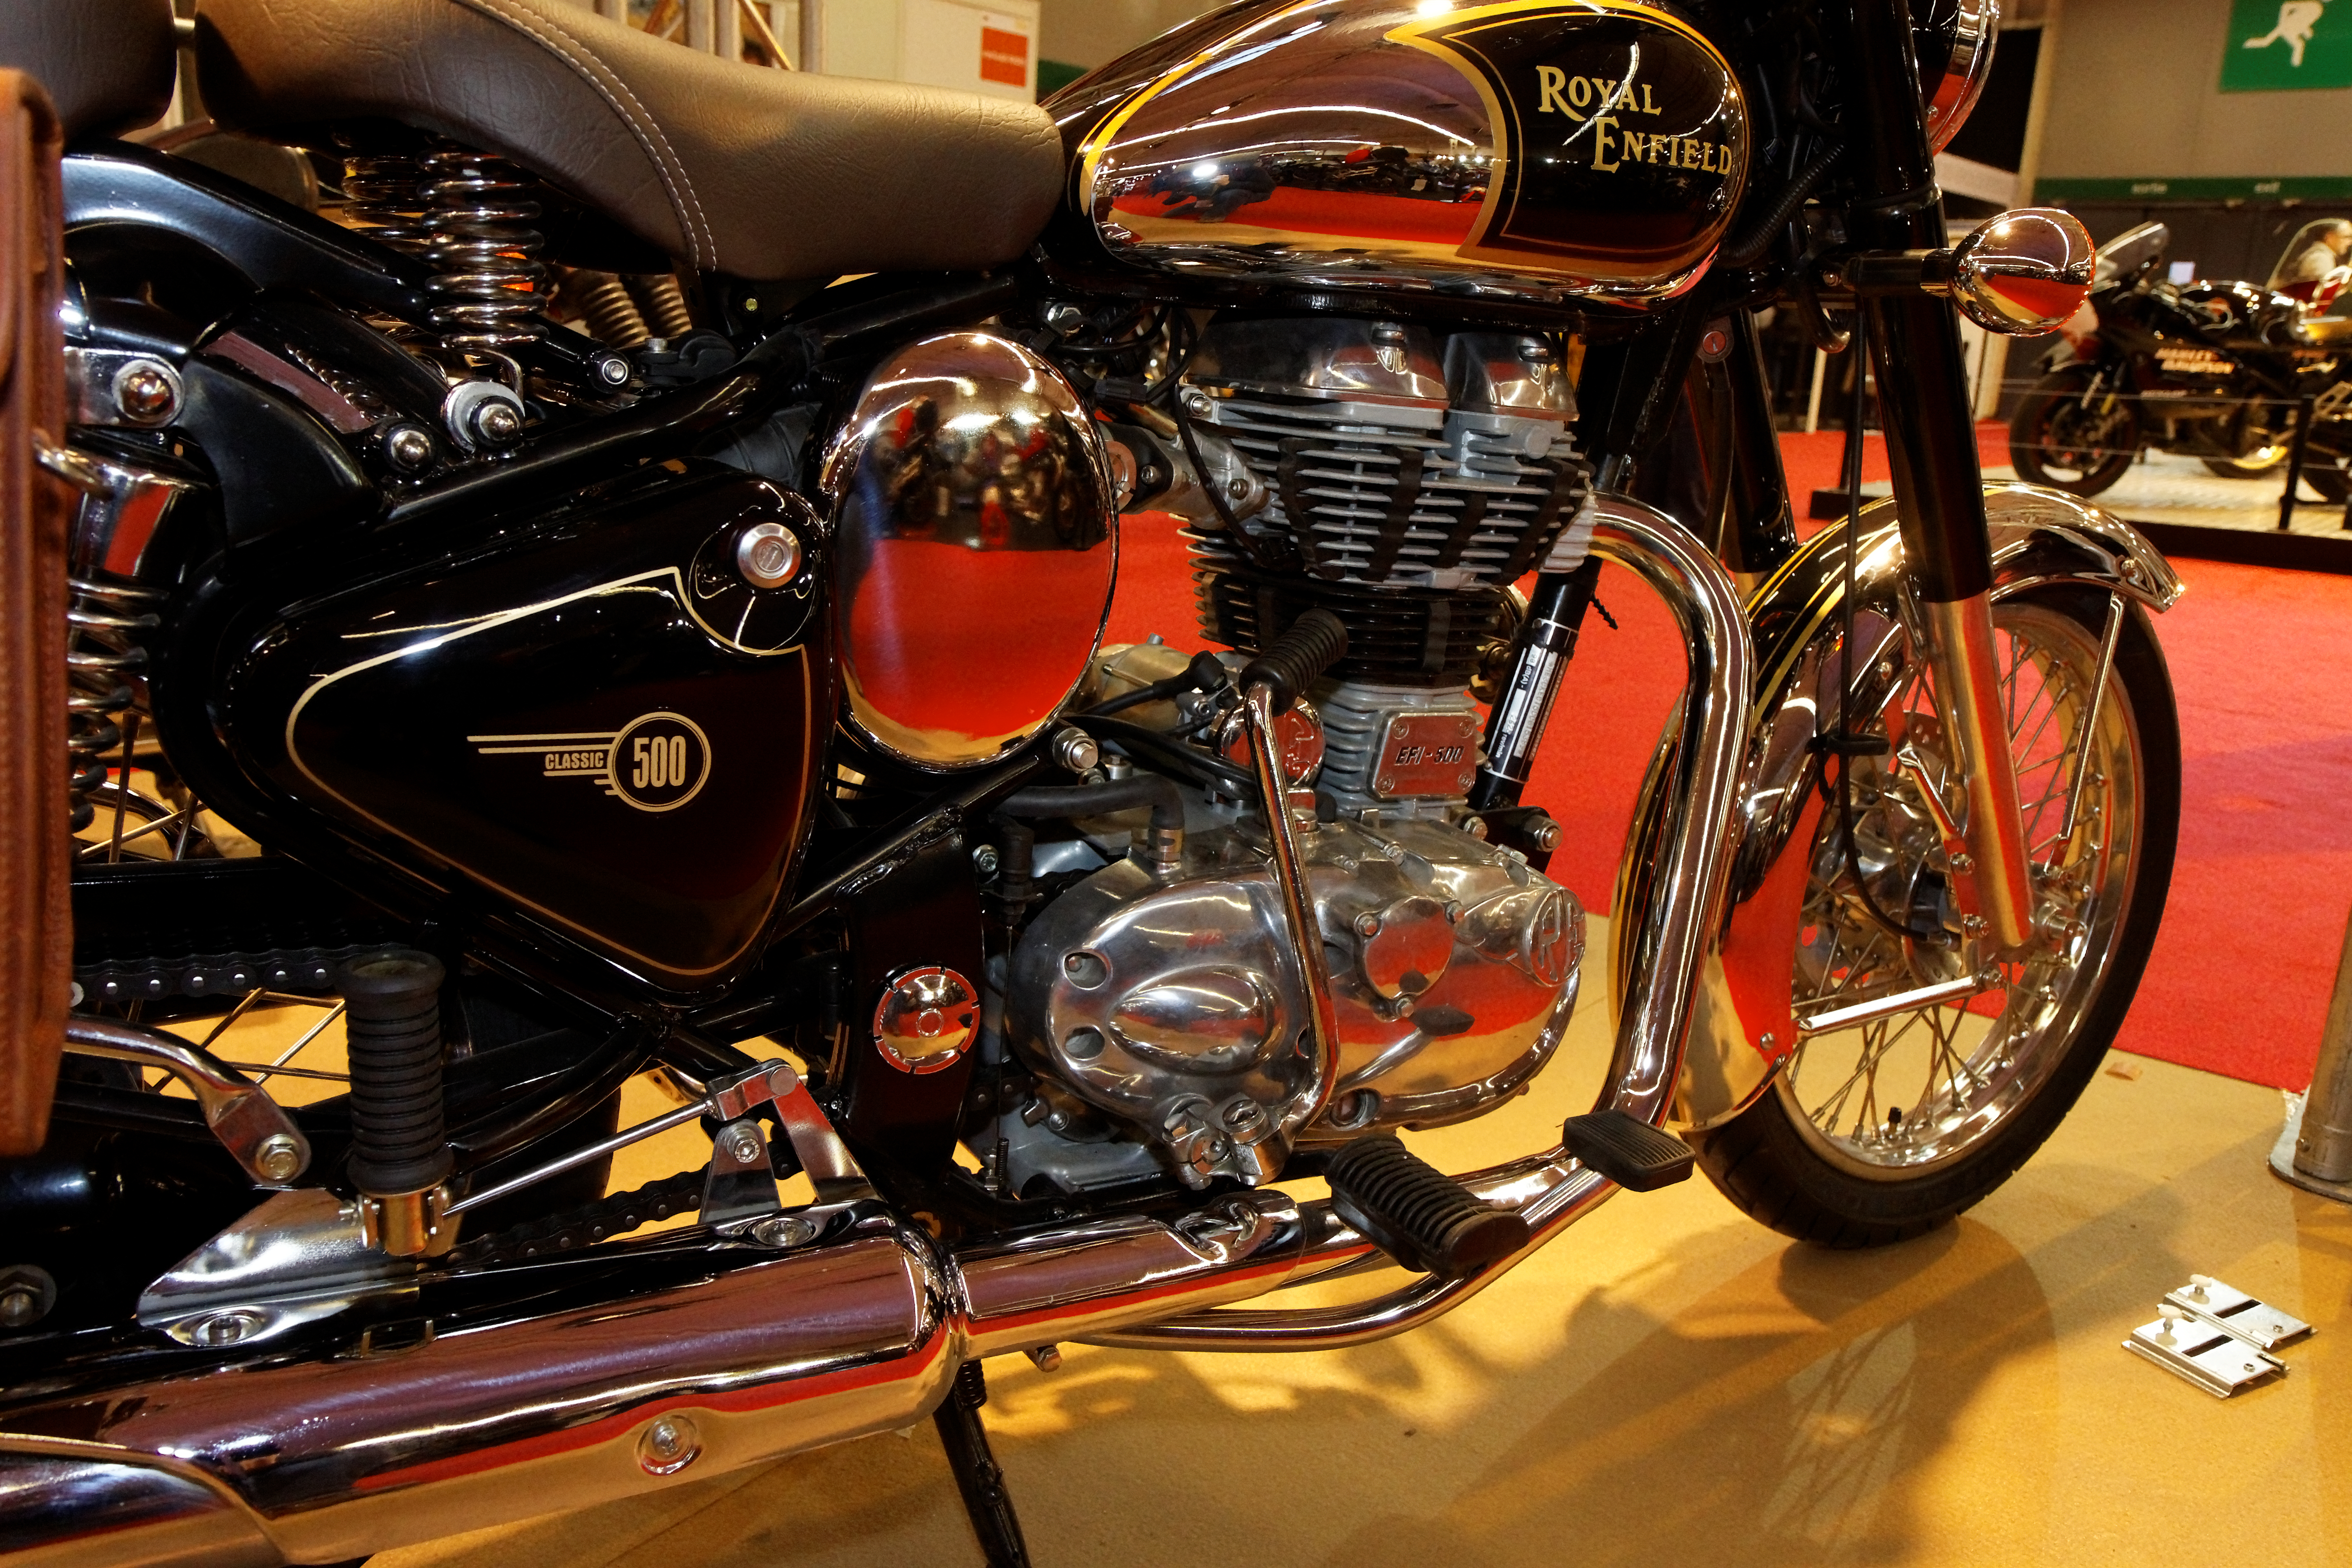 2011 Enfield Bullet Classic 500 #6